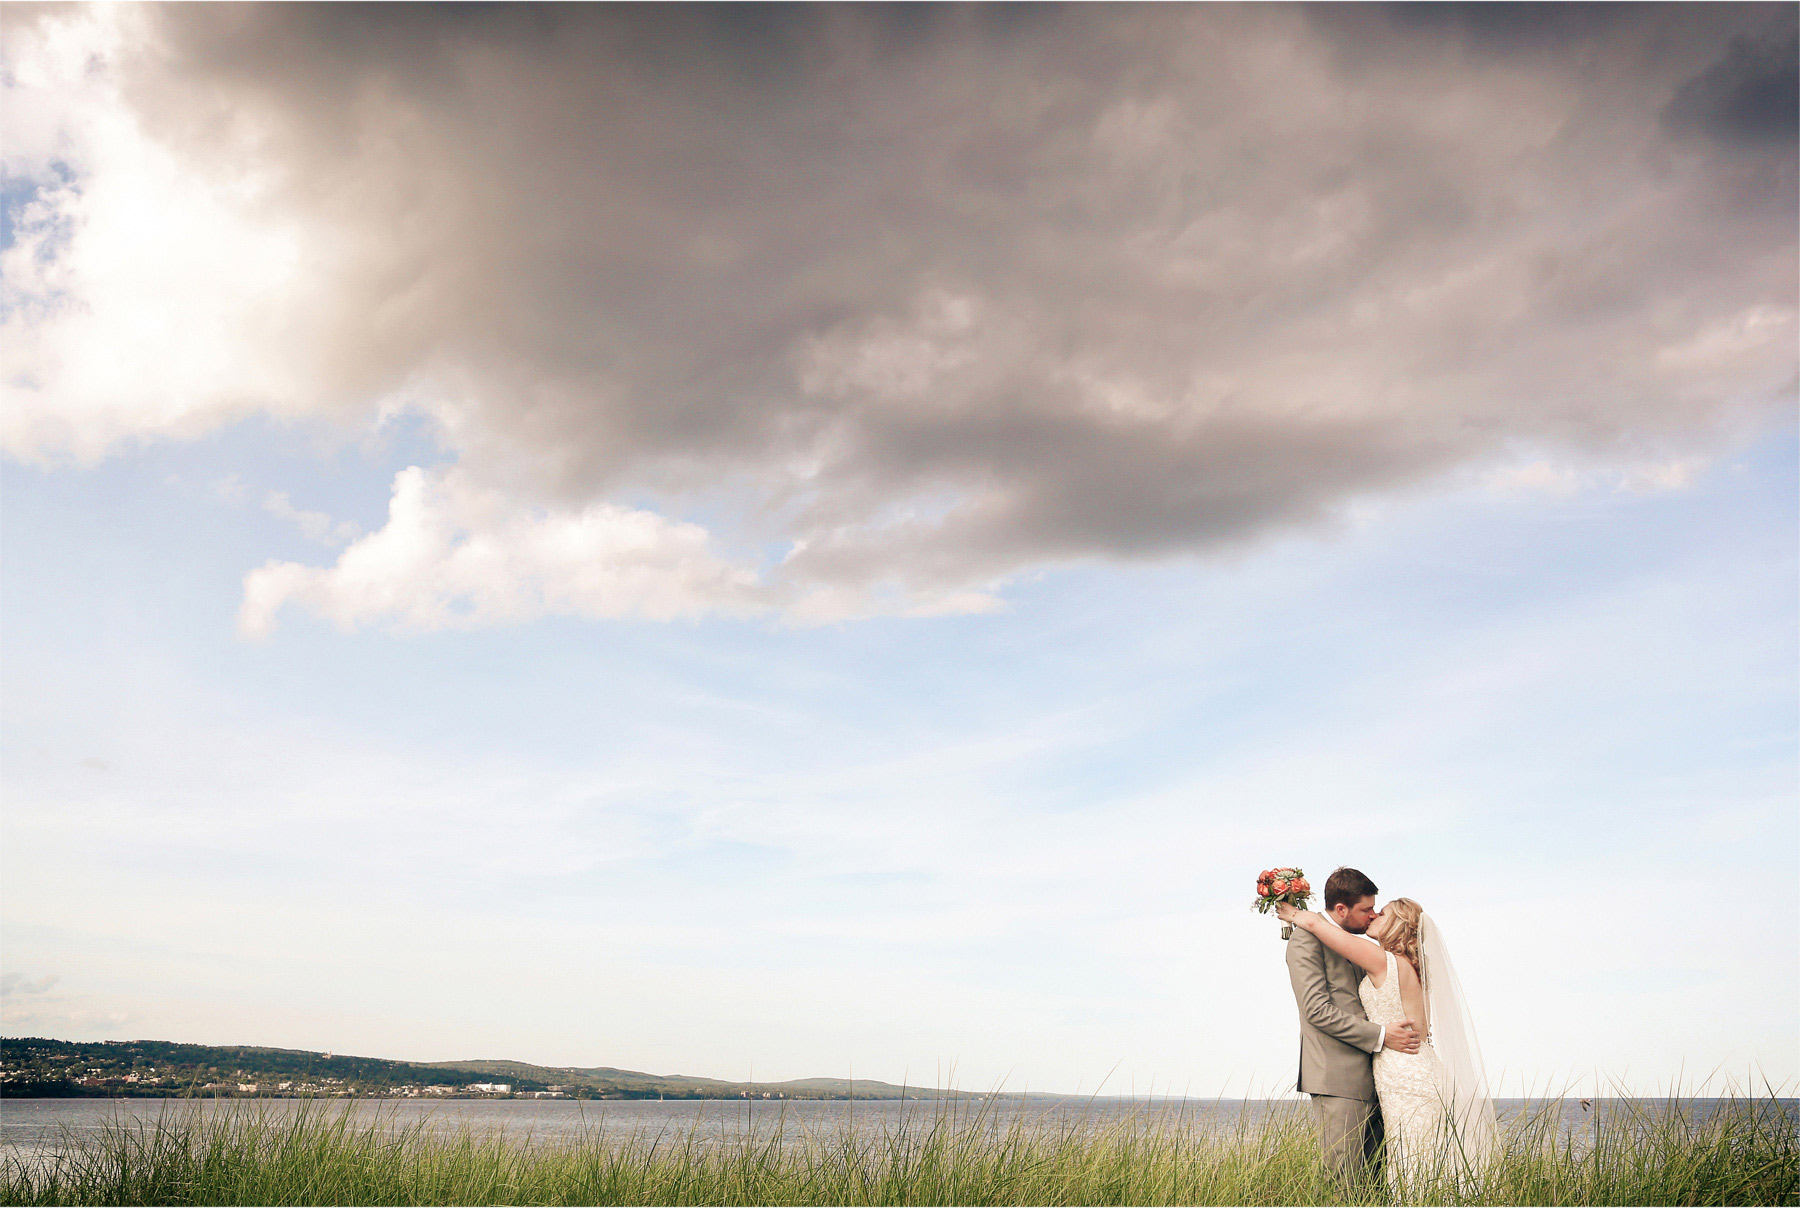 14-Duluth-Minnesota-Wedding-Photographer-by-Andrew-Vick-Photography-Summer-Bride-Groom-Lake-Superior-Grass-Kiss-Vintage-Katie-and-Andrew.jpg